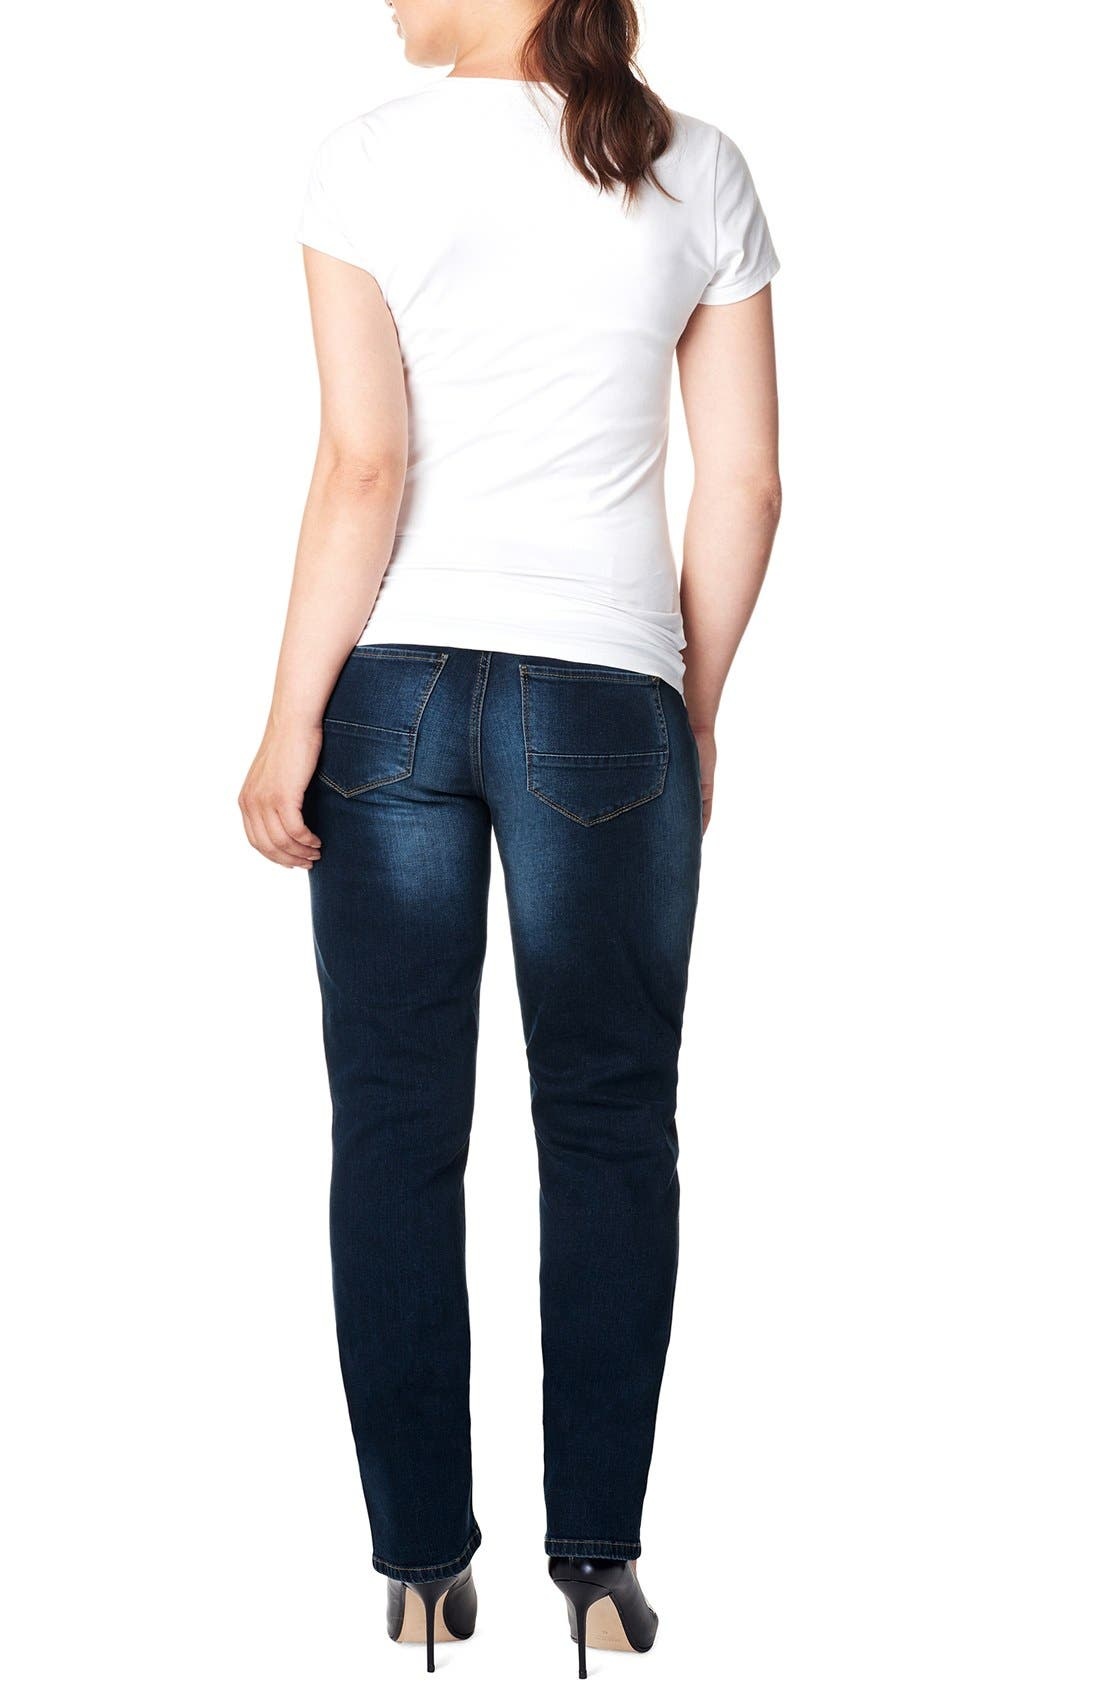 Alternate Image 2  - Noppies 'Mena Comfort' Over the Belly Straight Leg Maternity Jeans (Plus Size)